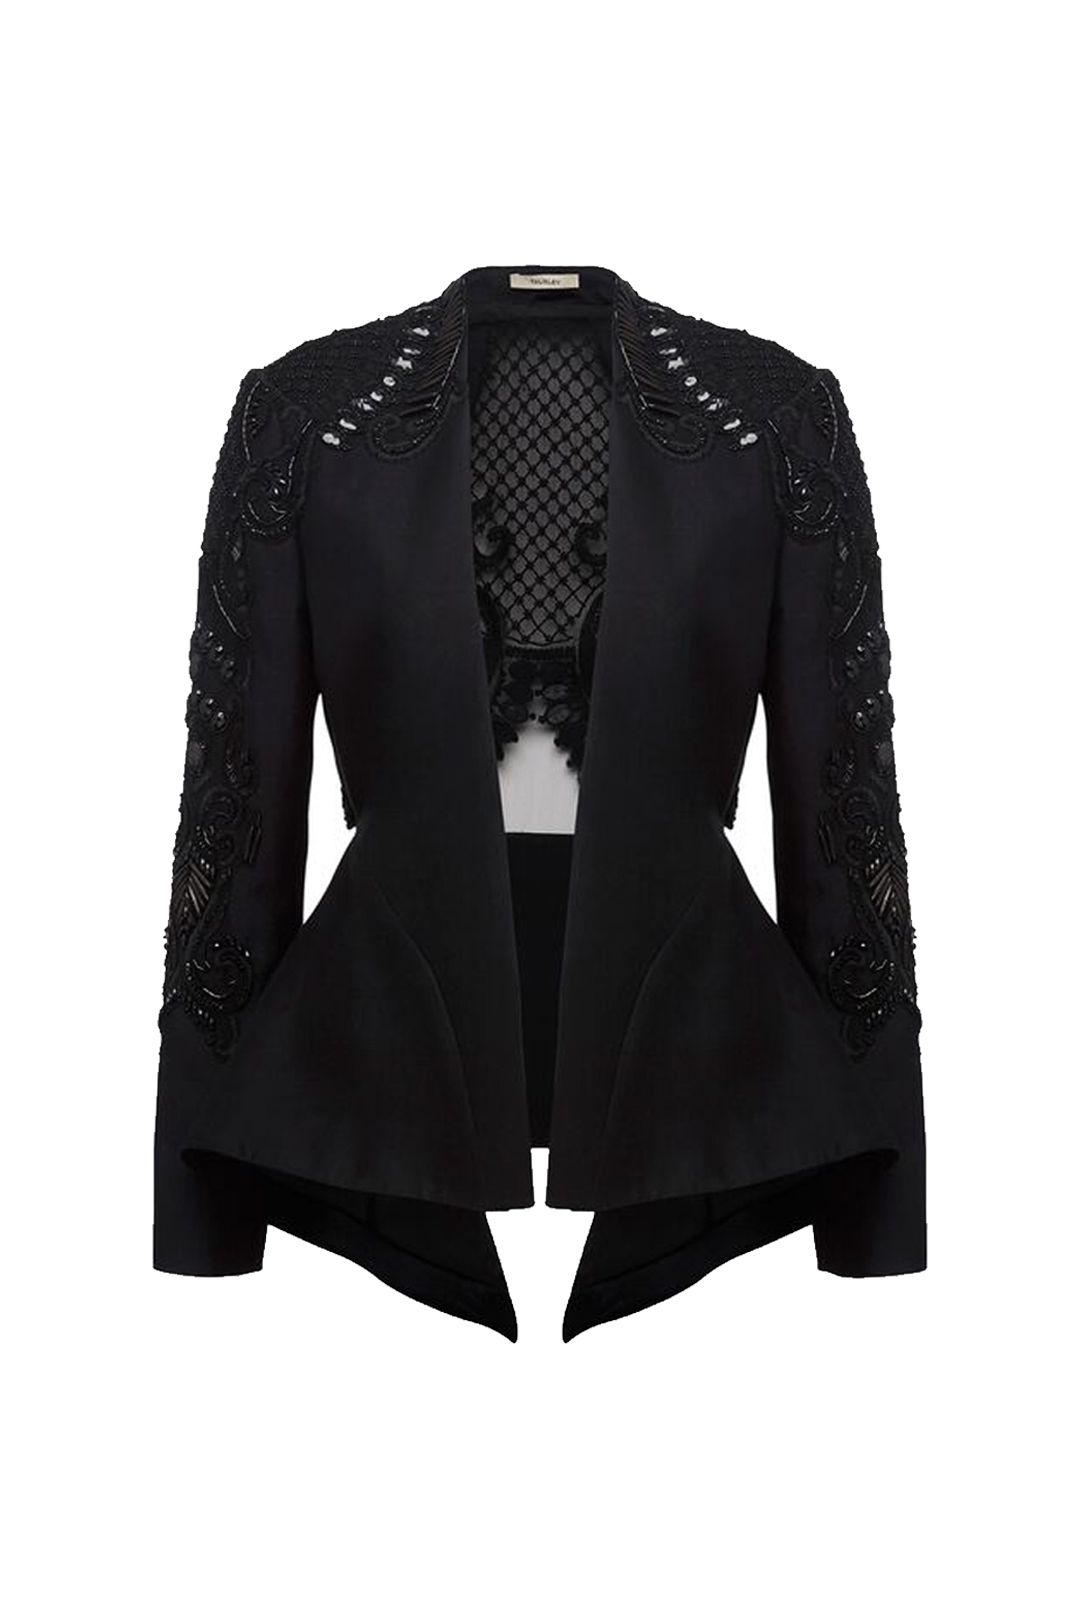 Thurley - Concerto Beaded Jacket - Black - Front